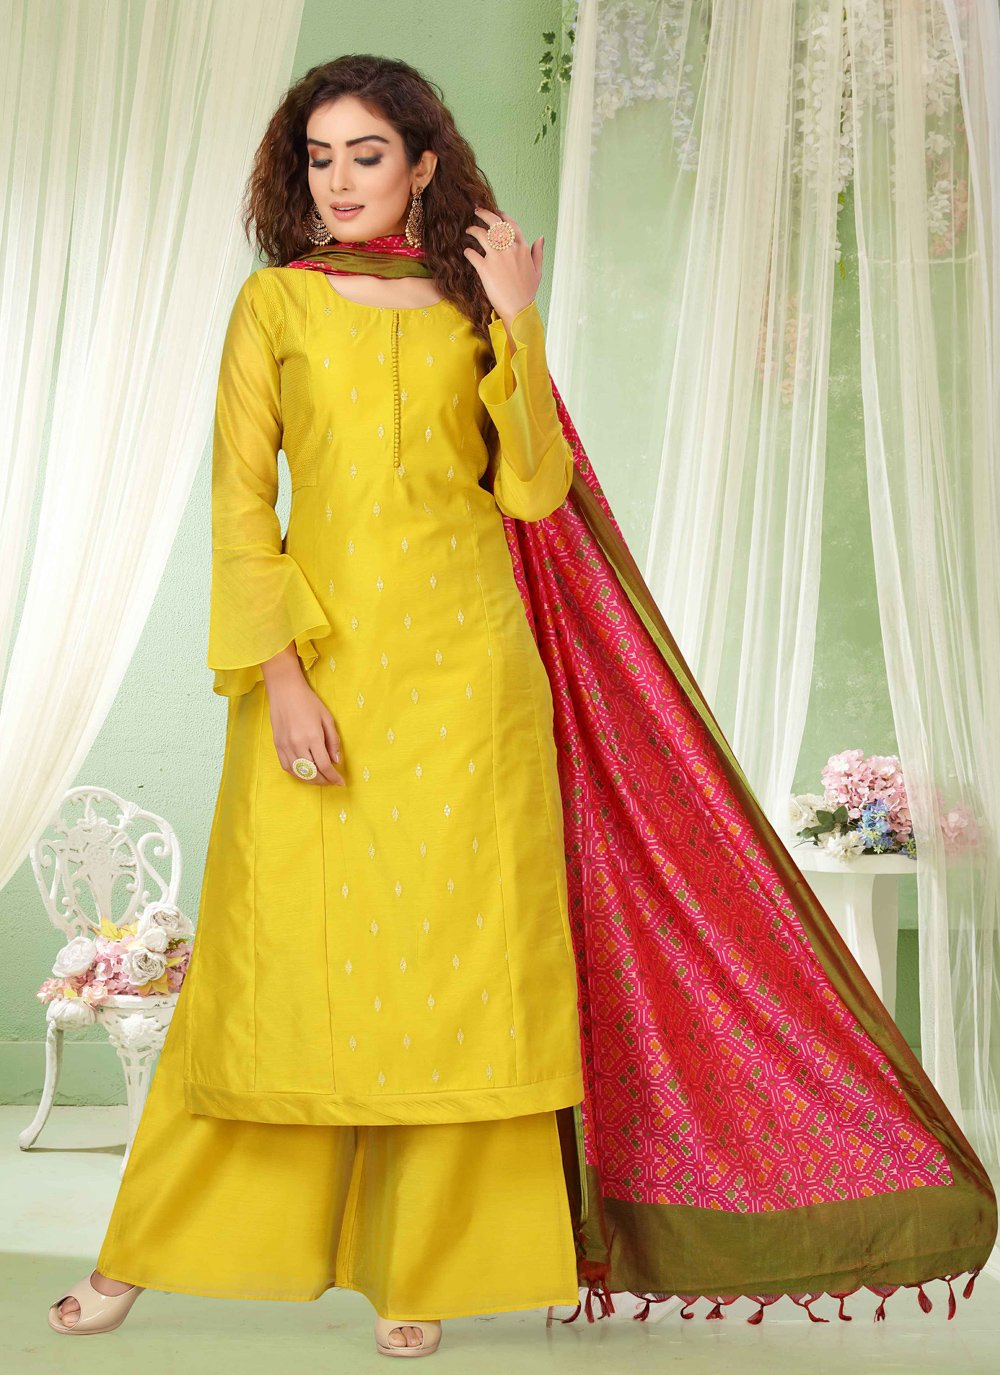 Chanderi Embroidered Yellow Palazzo Salwar Kameez